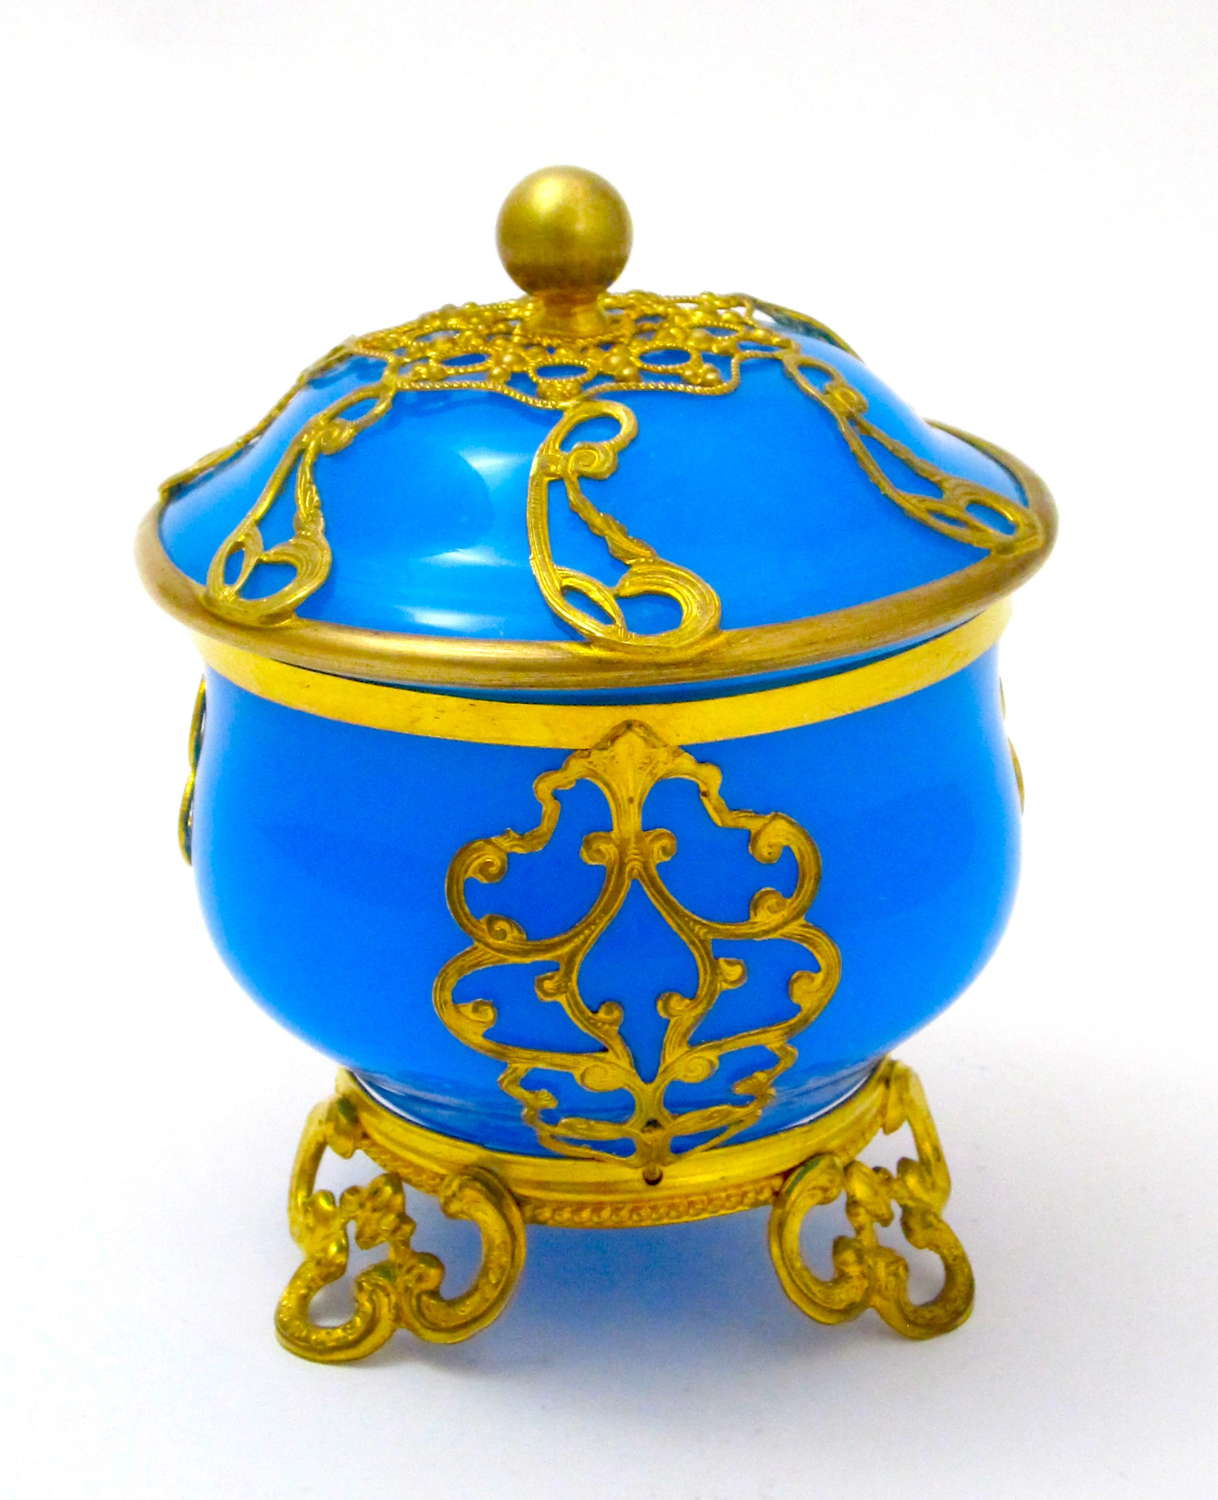 Antique French Blue Opaline Glass Box and Cover